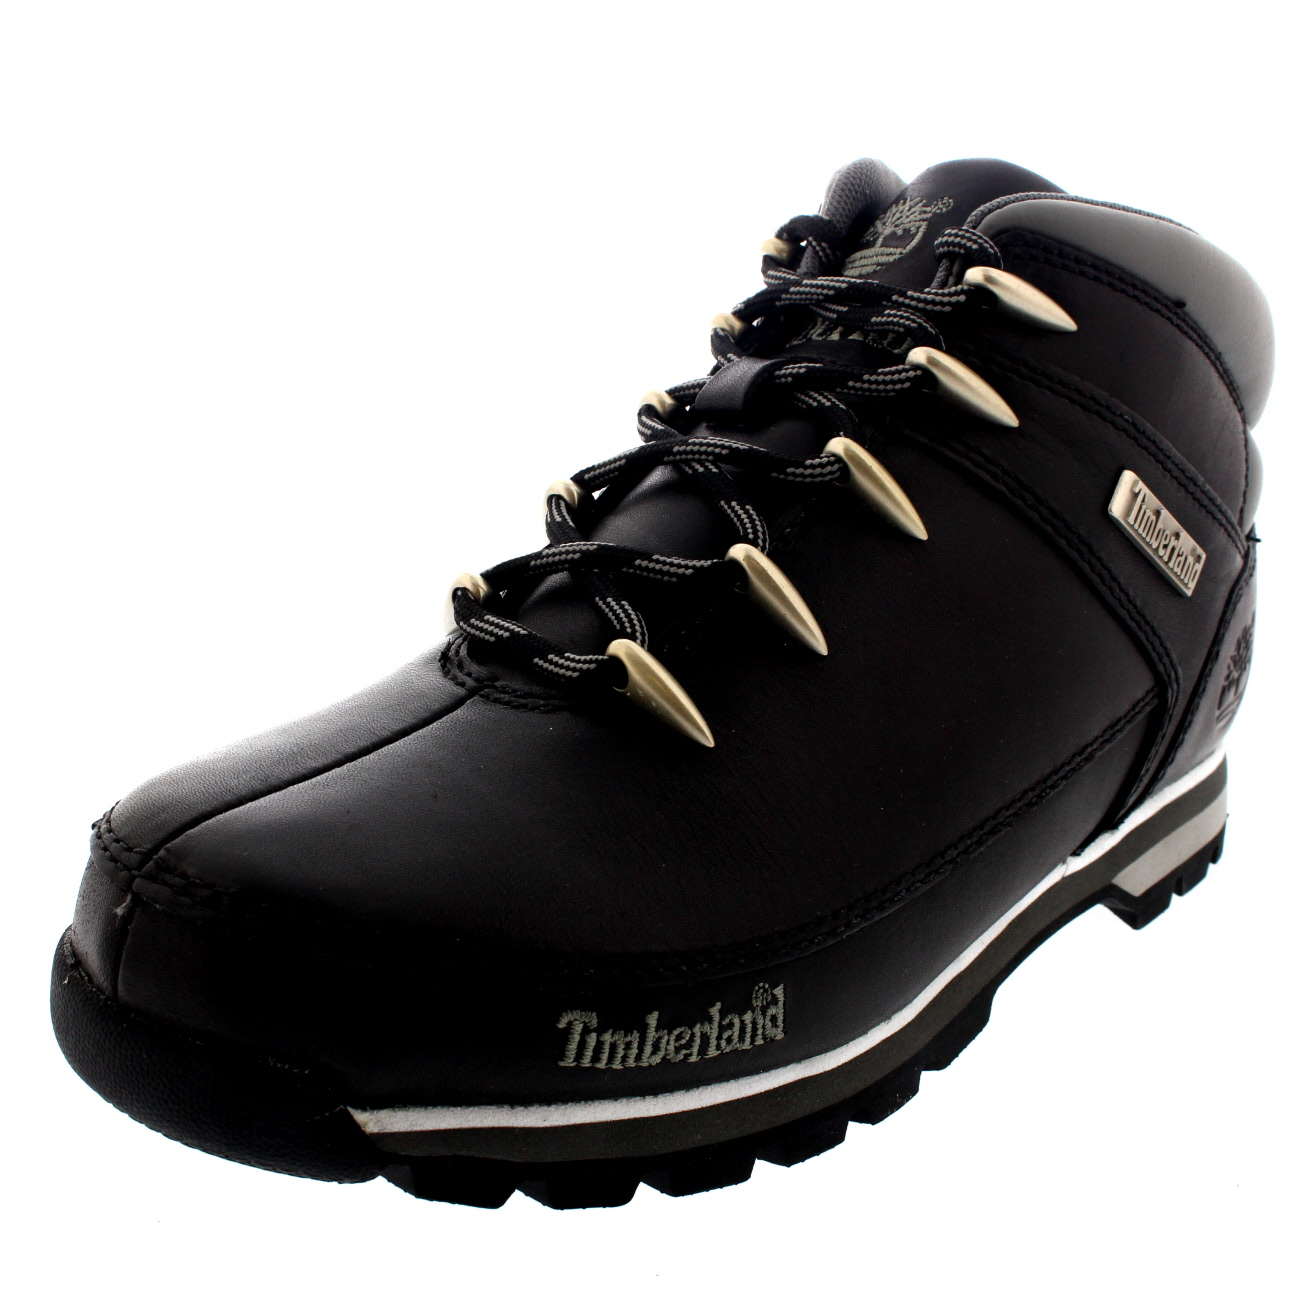 Mens Timberland Euro Sprint Hiker Casual Hiking Walking Ankle Boots Black